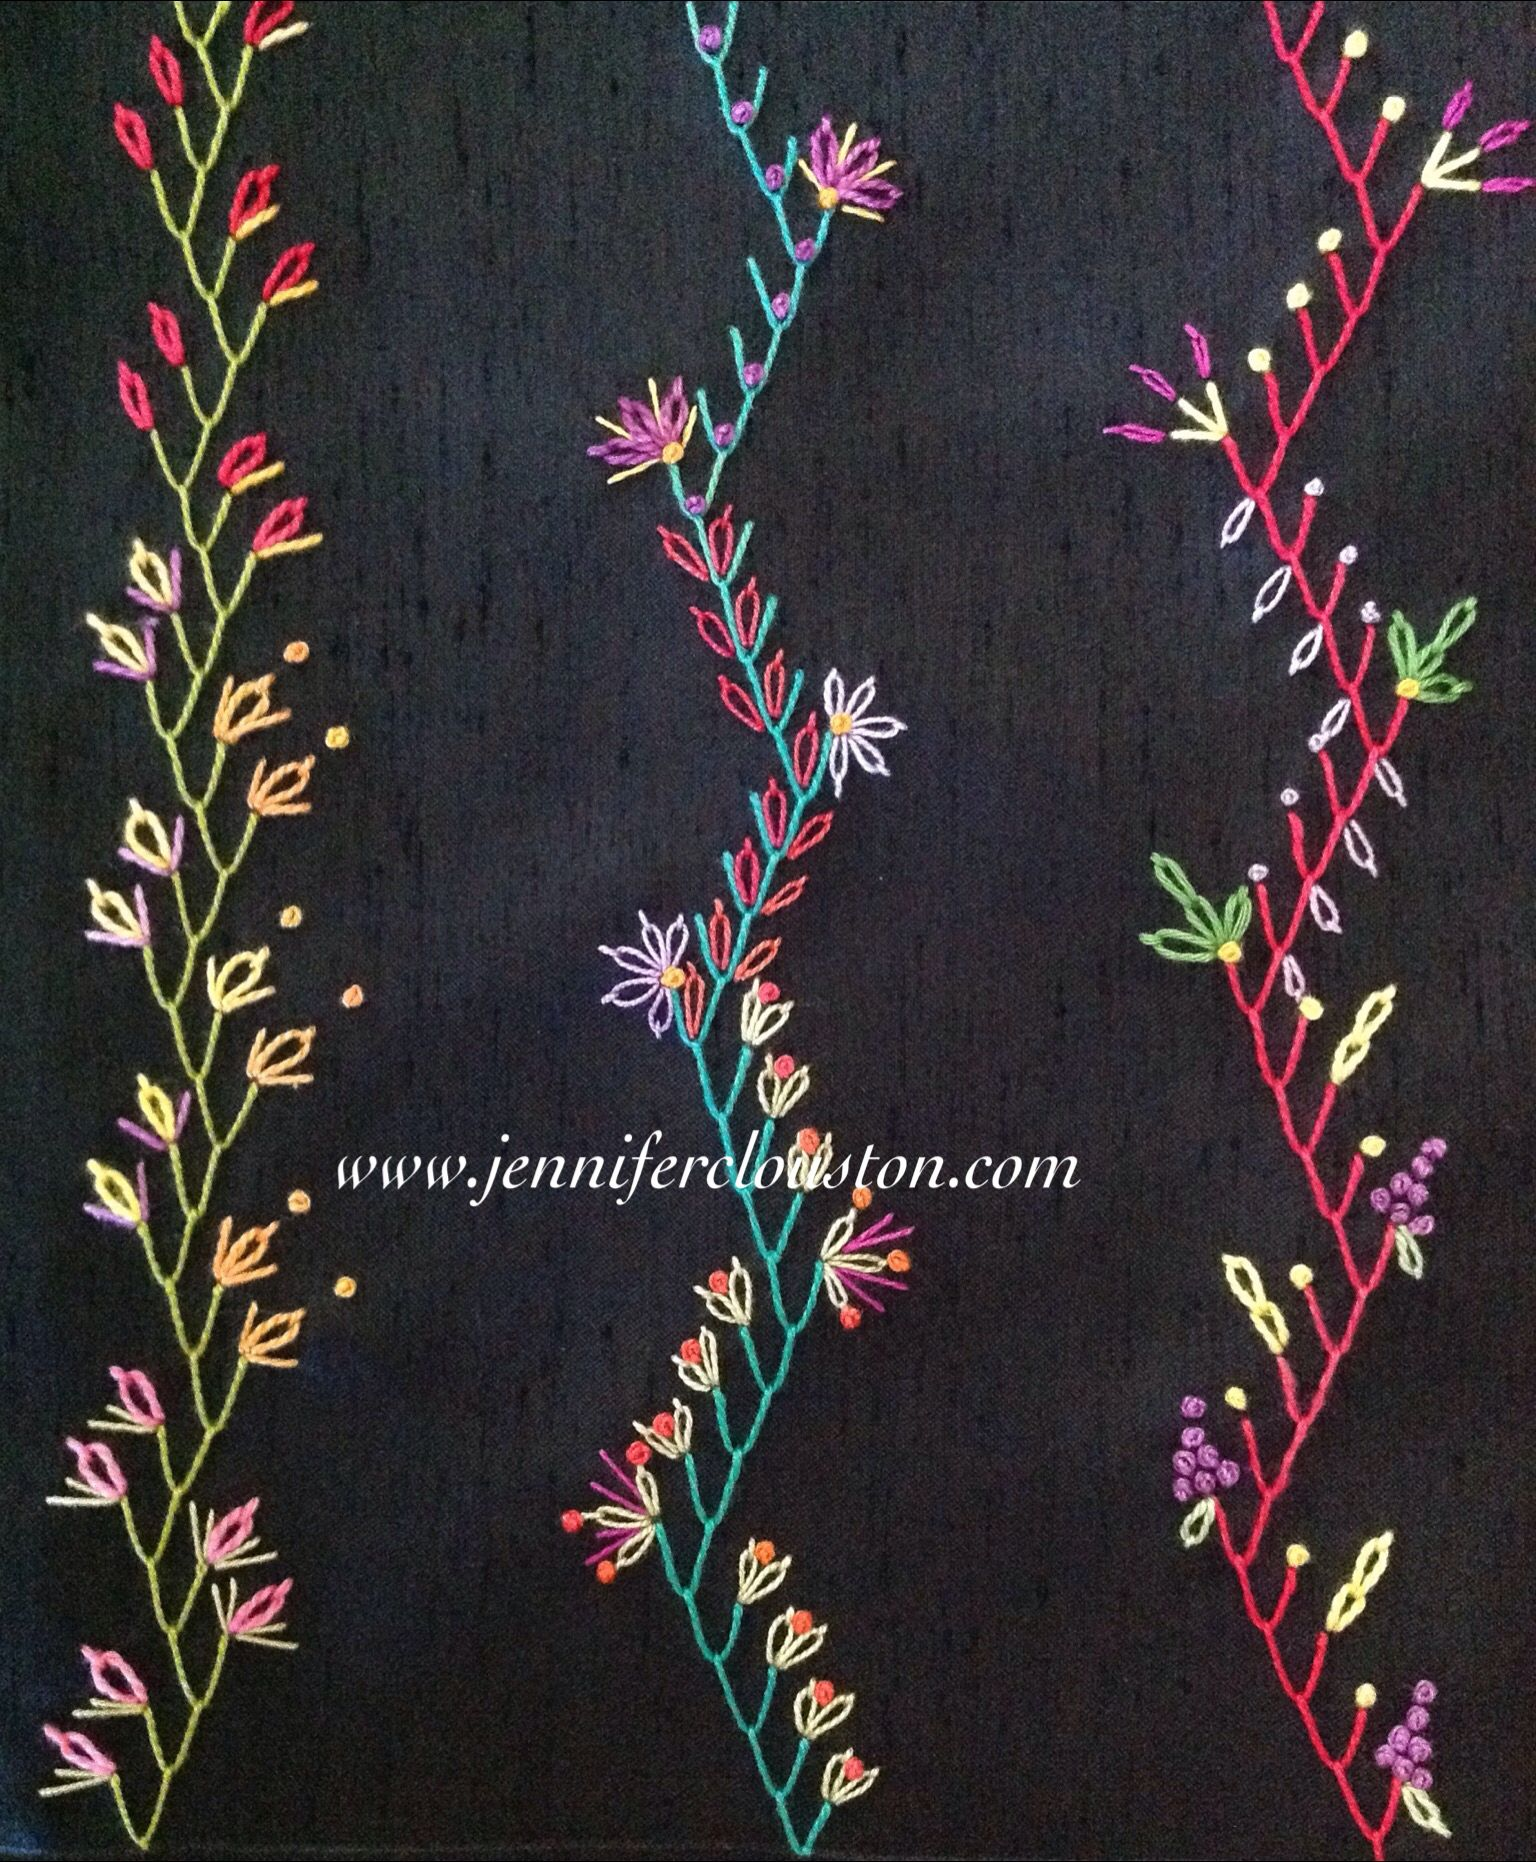 Embroidery Feather Stitch Crazy Quilting Crazy Patchwork